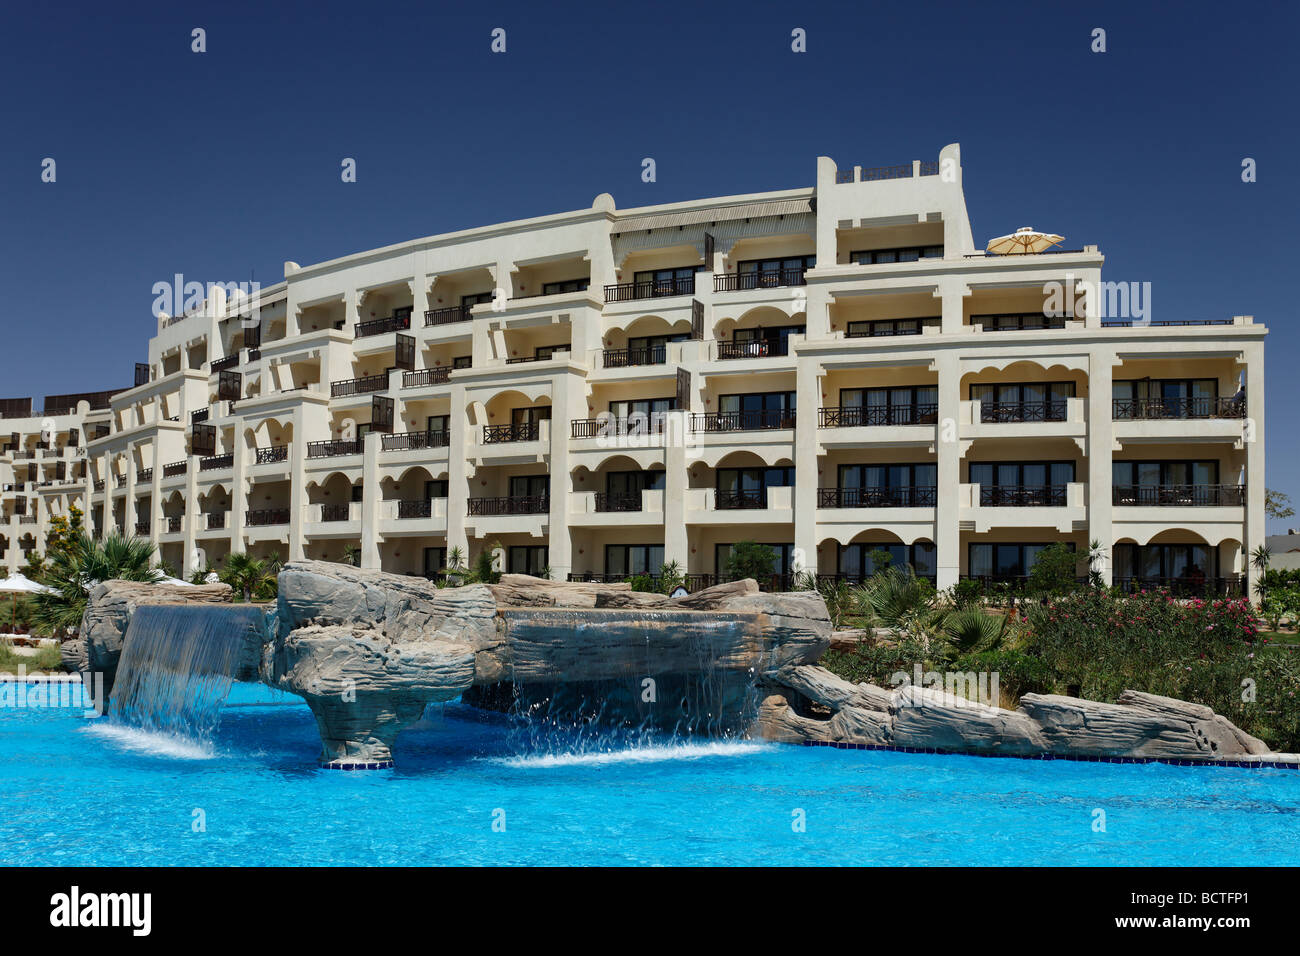 Waterfall, pool, Steigenberger Al Dau Beach Resort, Hurhada, Egypt, Red Sea, Africa - Stock Image